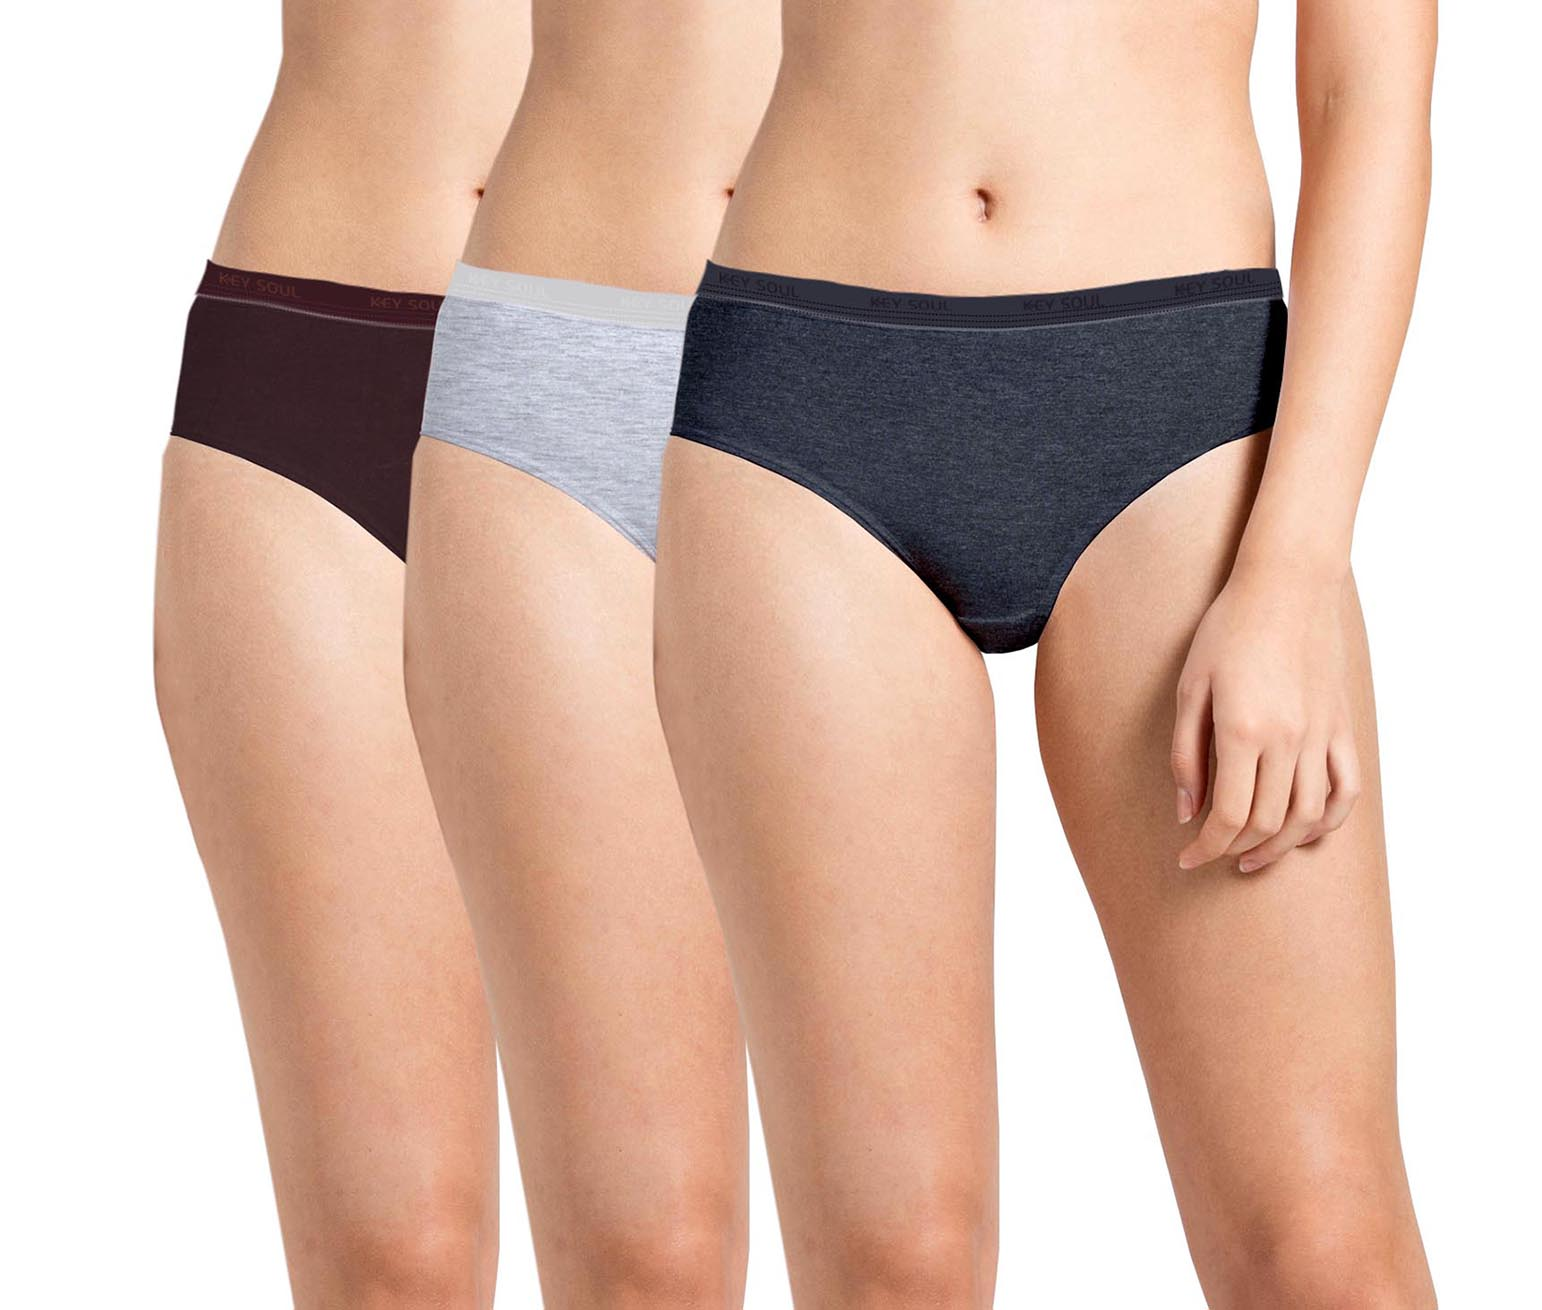 Wmn Panty KS001-P-O3-SO PACK 11